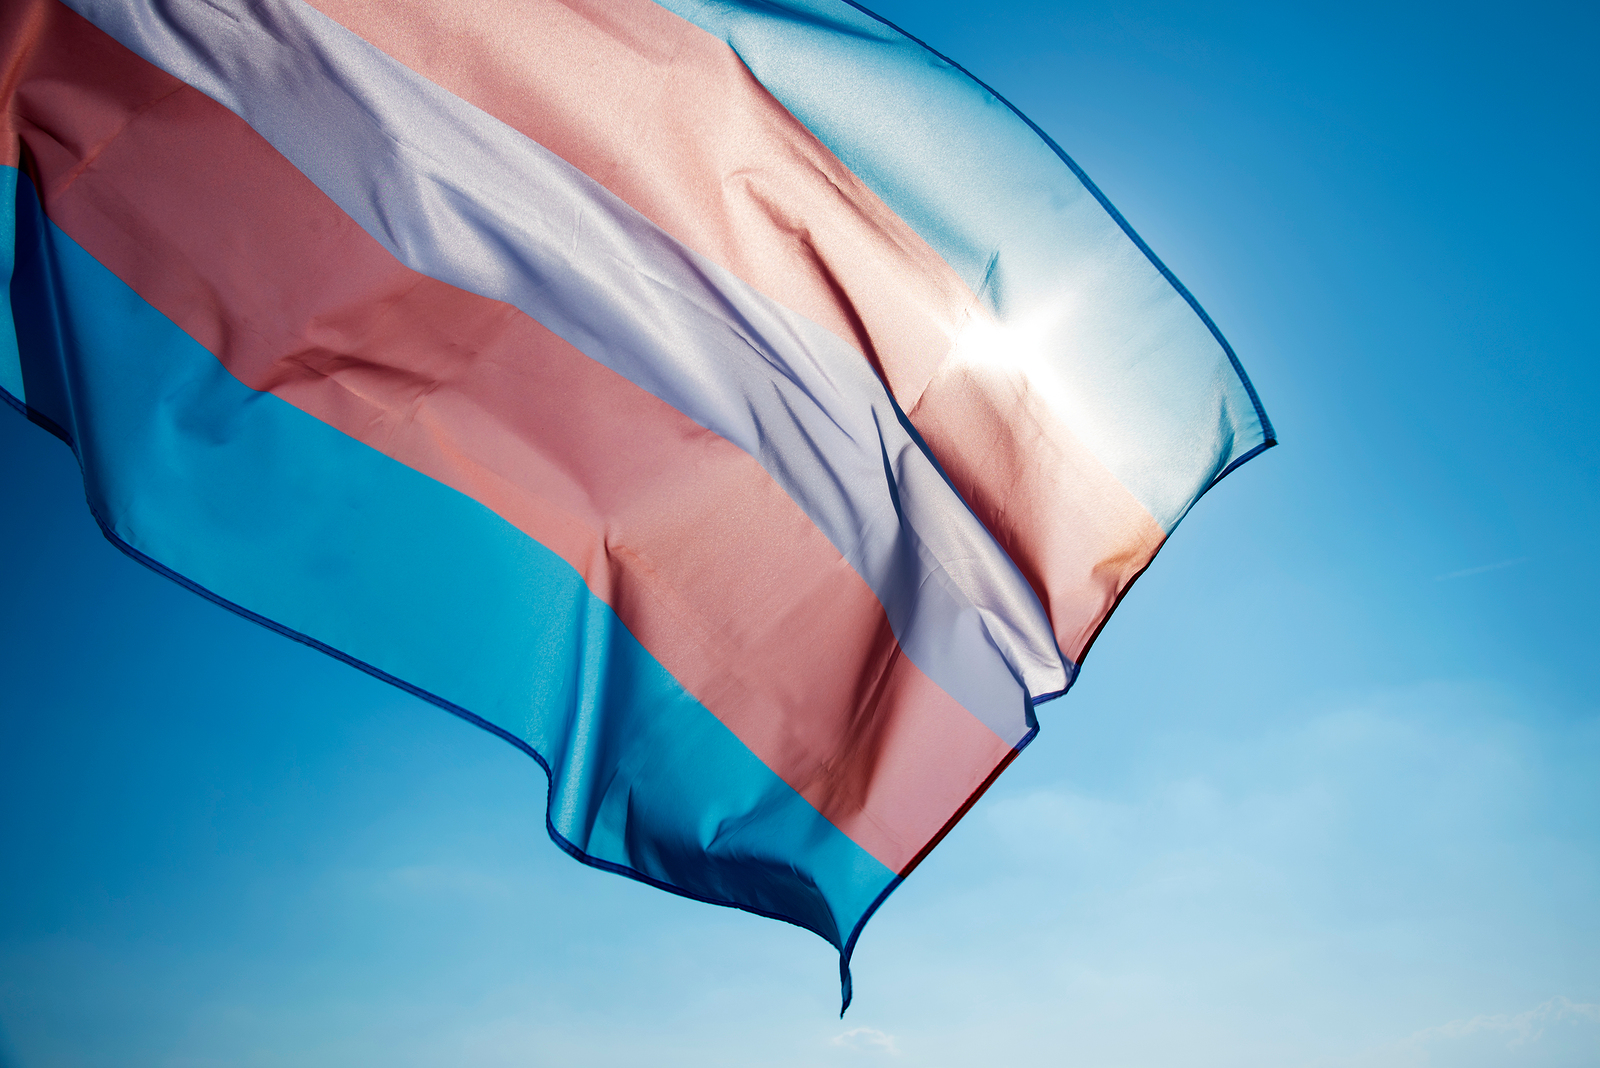 Image of the Transgender Flag | LGBT Counseling | Therapy & Mental Health Services | Tulsa, OK 74008